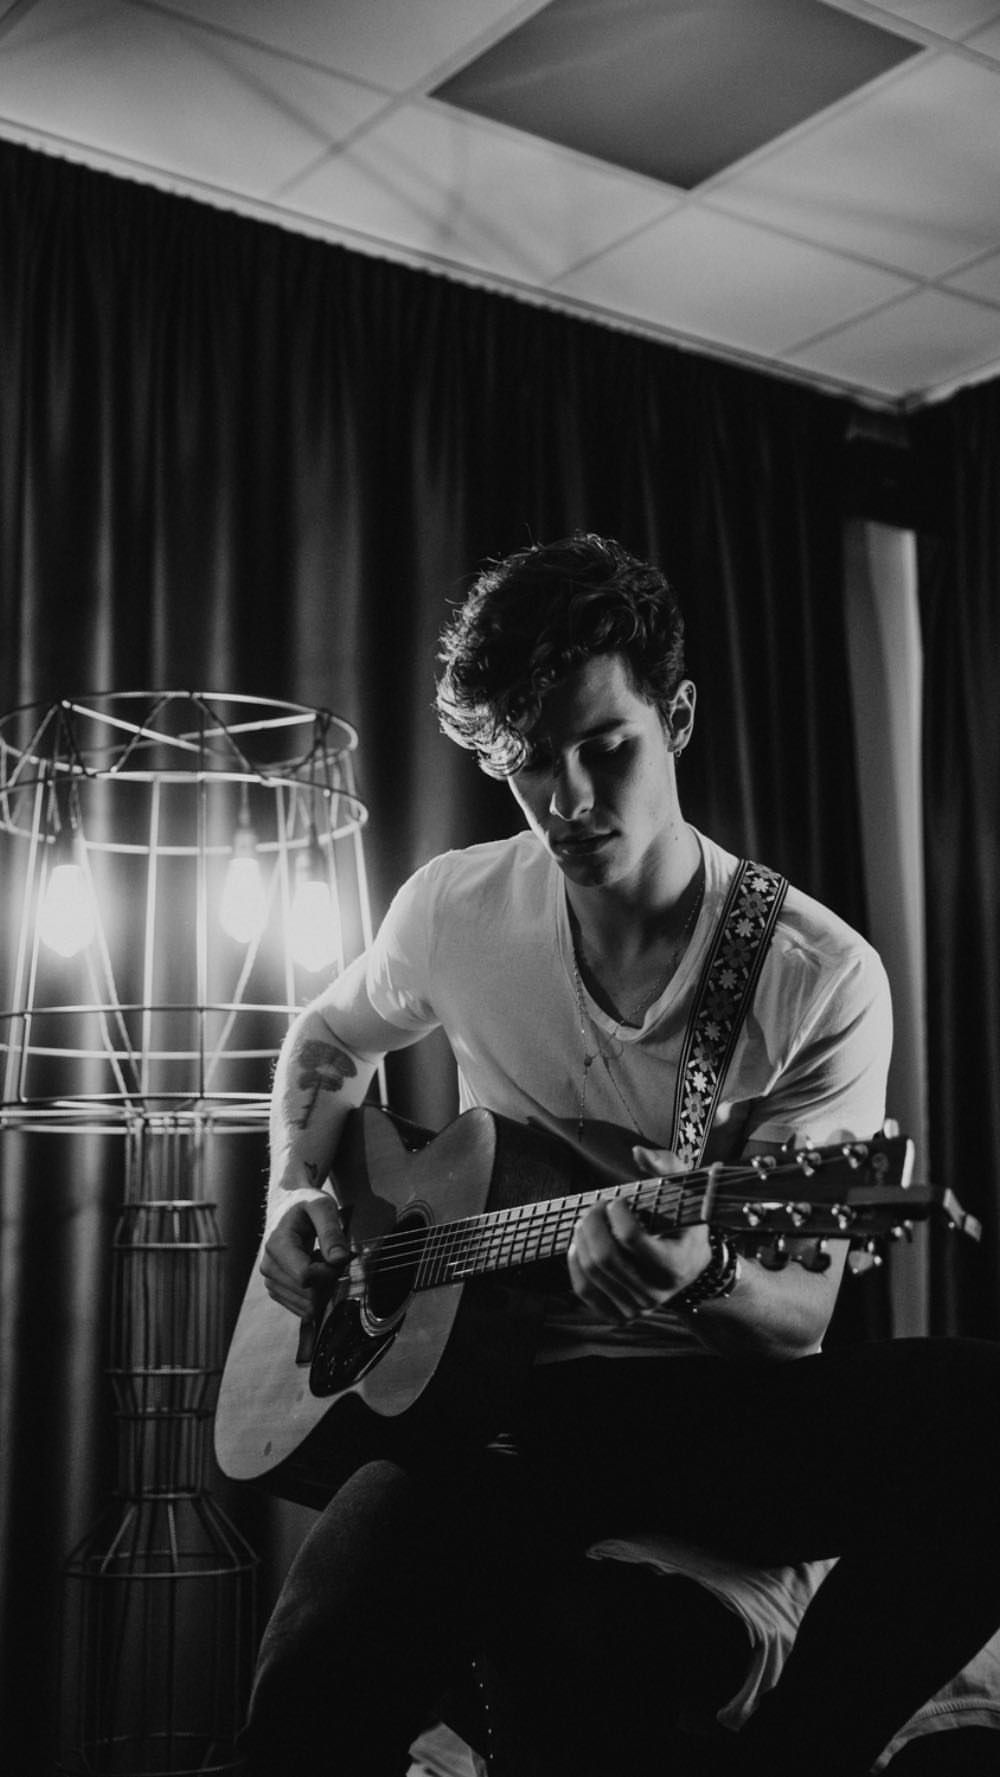 Instagram stories data base - Saved stories of @shawnmendes